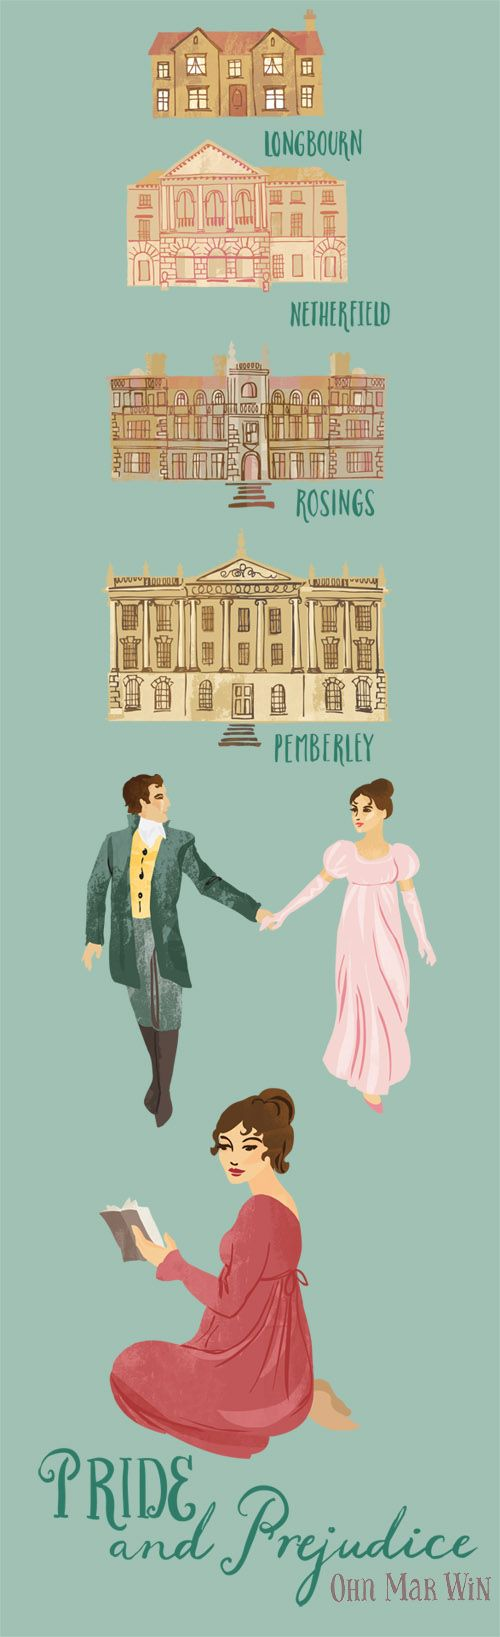 a book cover design for pride and prejudice by jane austen an illustrated map of the key locations from jane austen s famous book pride and prejudice